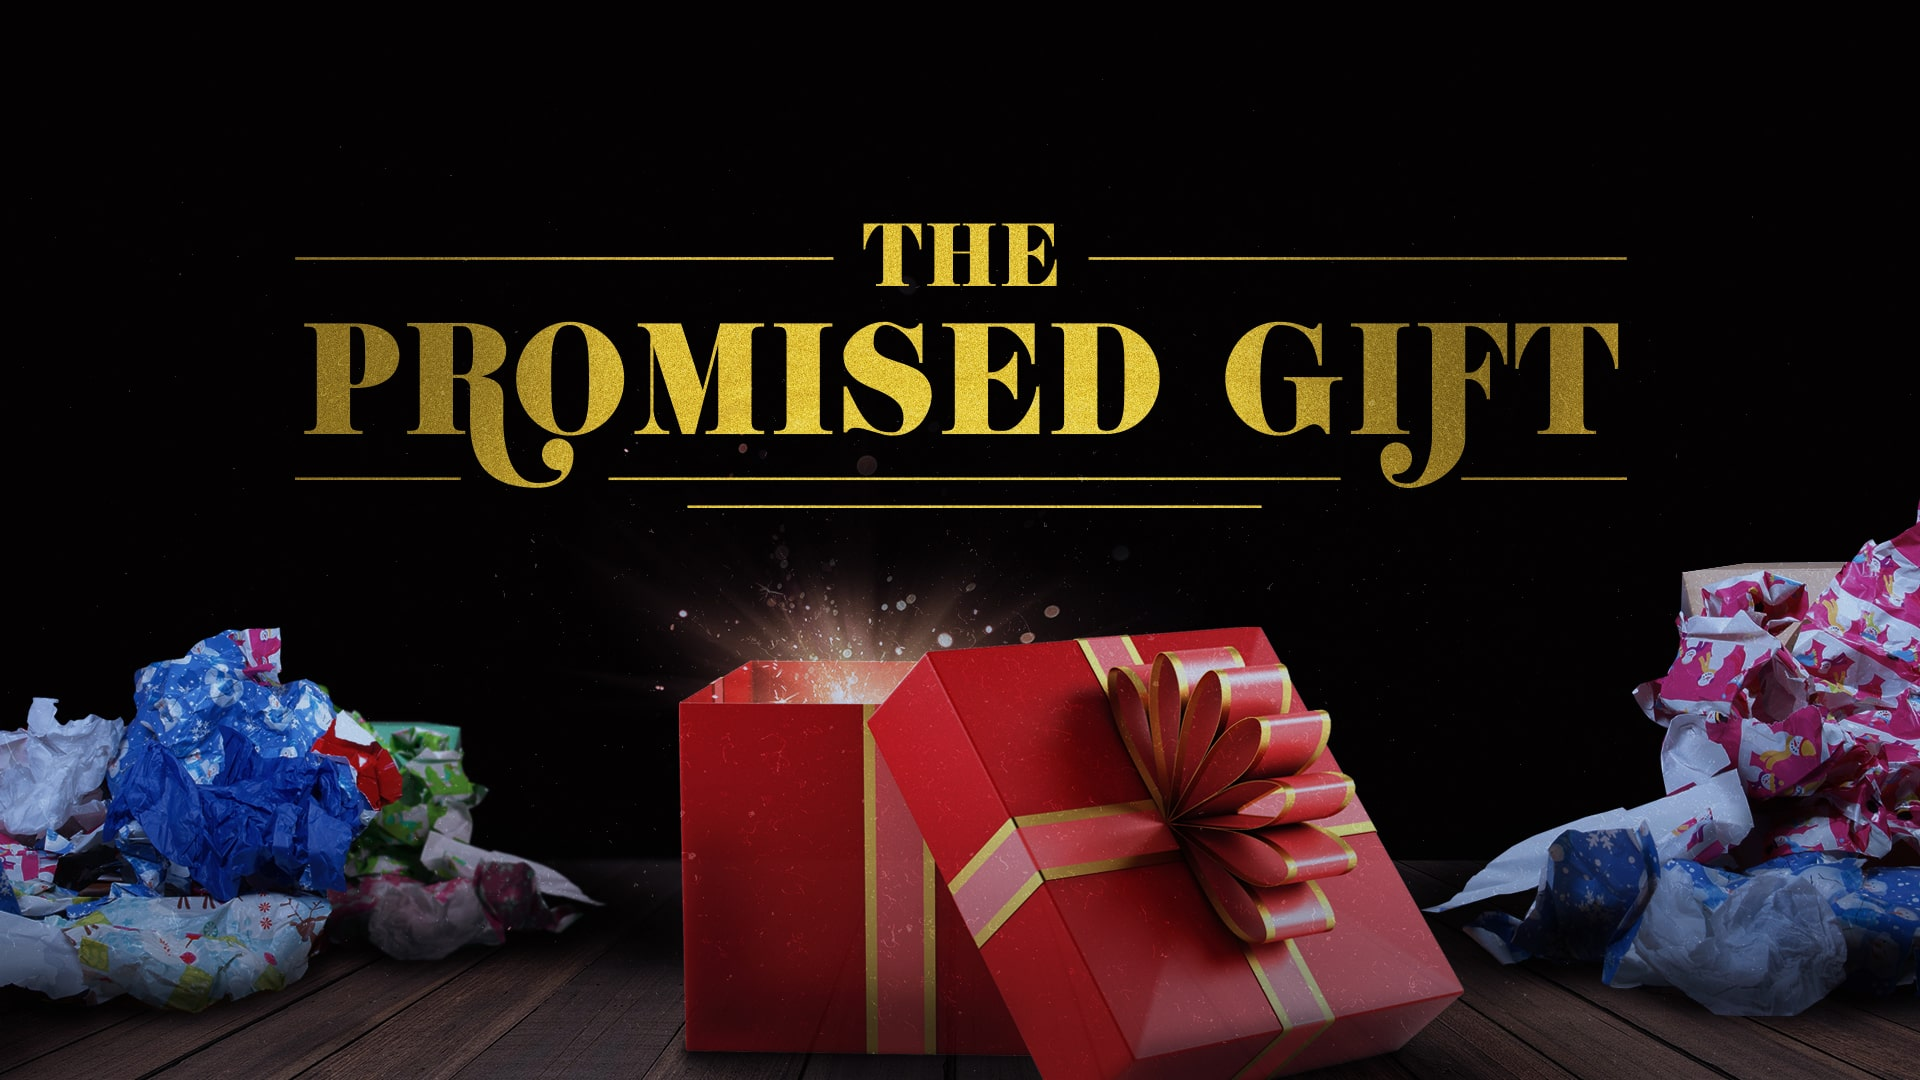 The Promised Gift